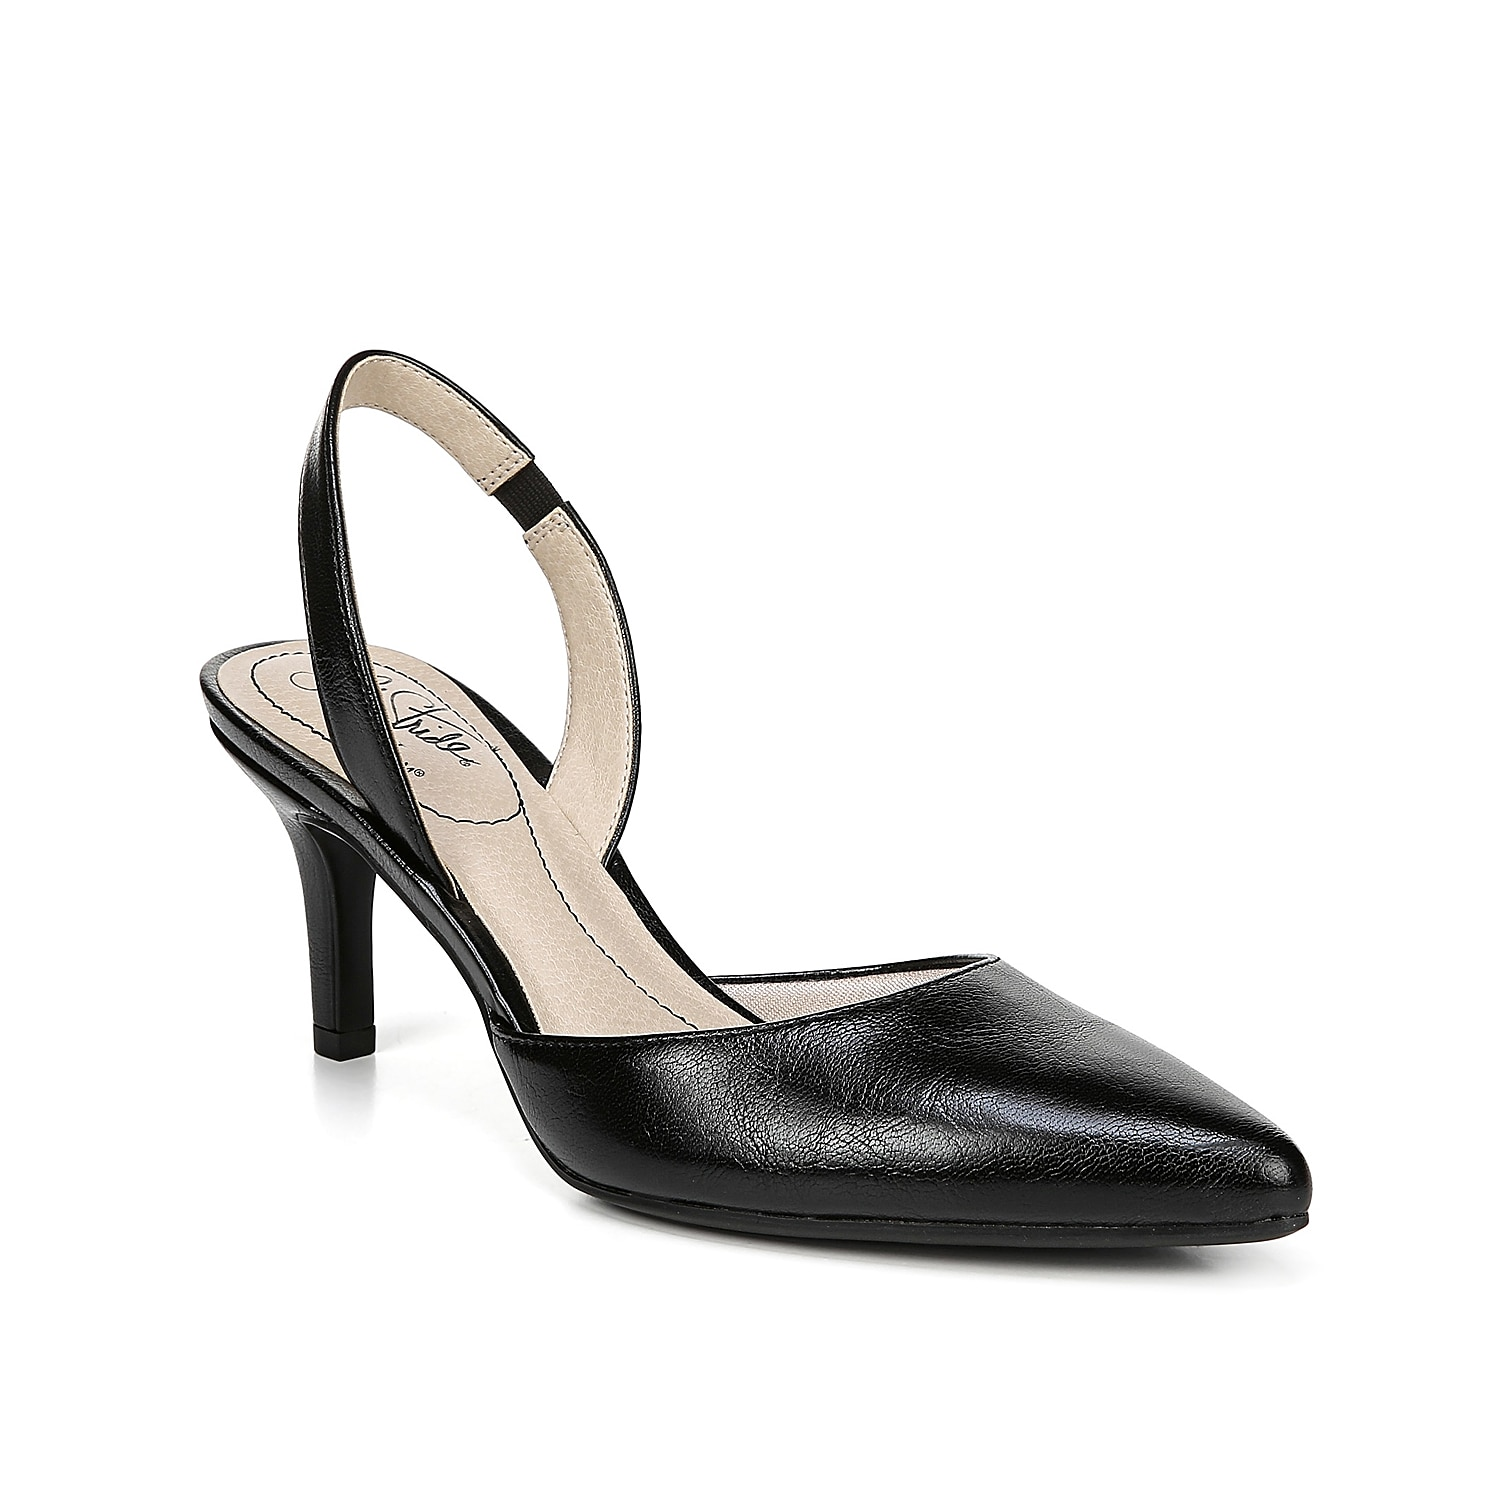 Take your outfit from work to date night with the Shane sandal from LifeStride. The simple, slingback strap and SoftSystem® footbed will keep you on your feet all night long!